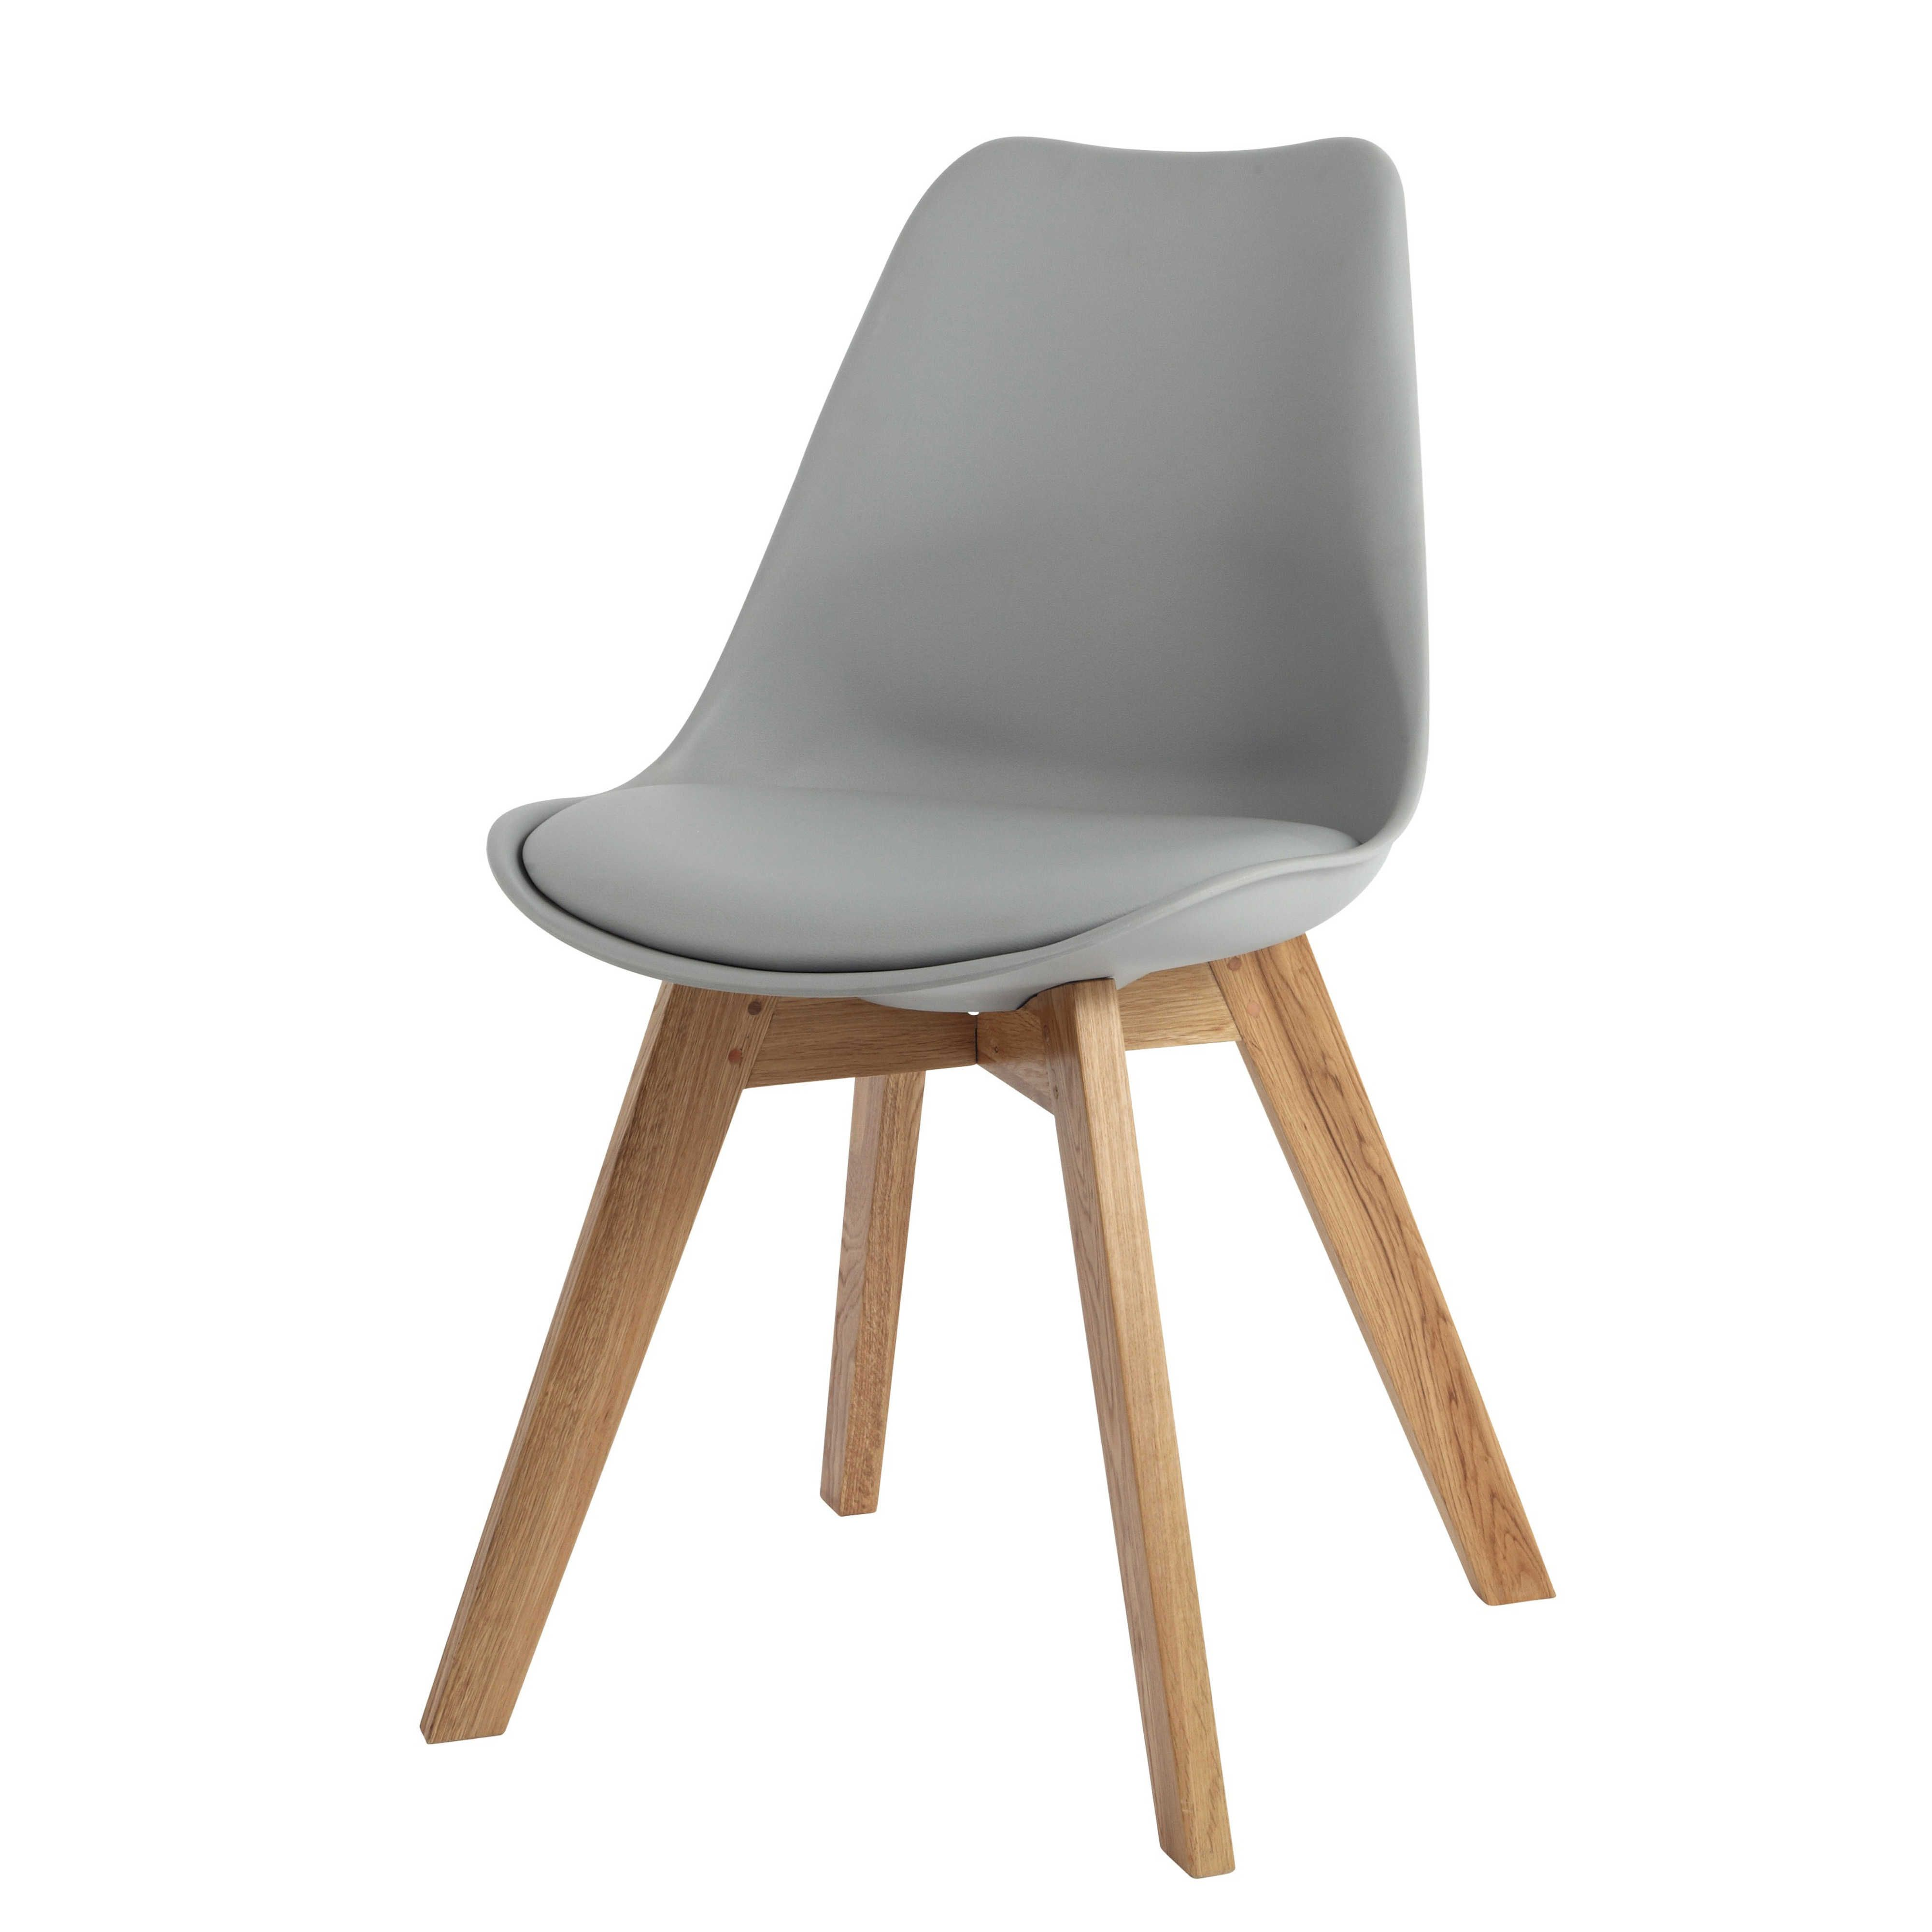 Polypropylene and oak chair in grey - Ice